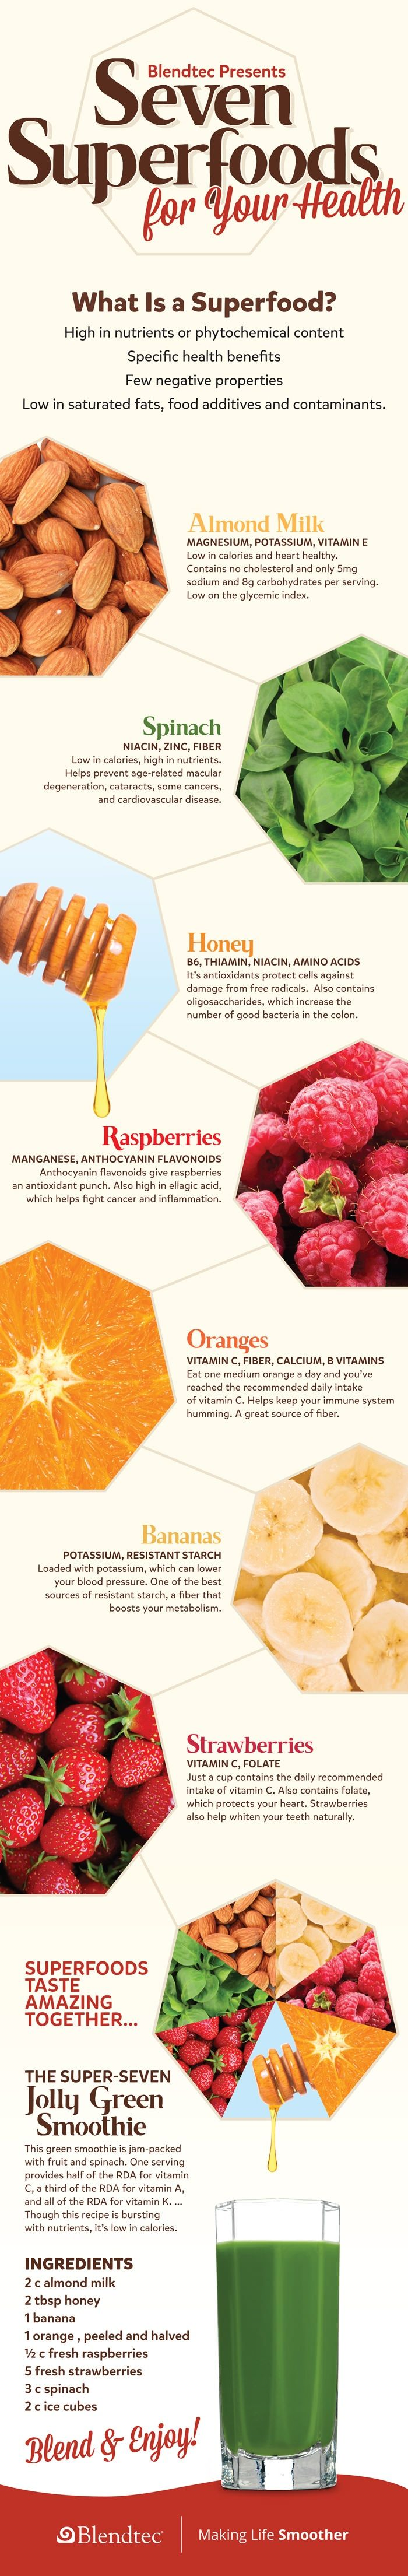 Seven Superfoods for your health! — #superfoods. Brought to you by SunGoddess Magazine: Igniting the Powerful Goddess WIthin http://sungoddessmagazine.com